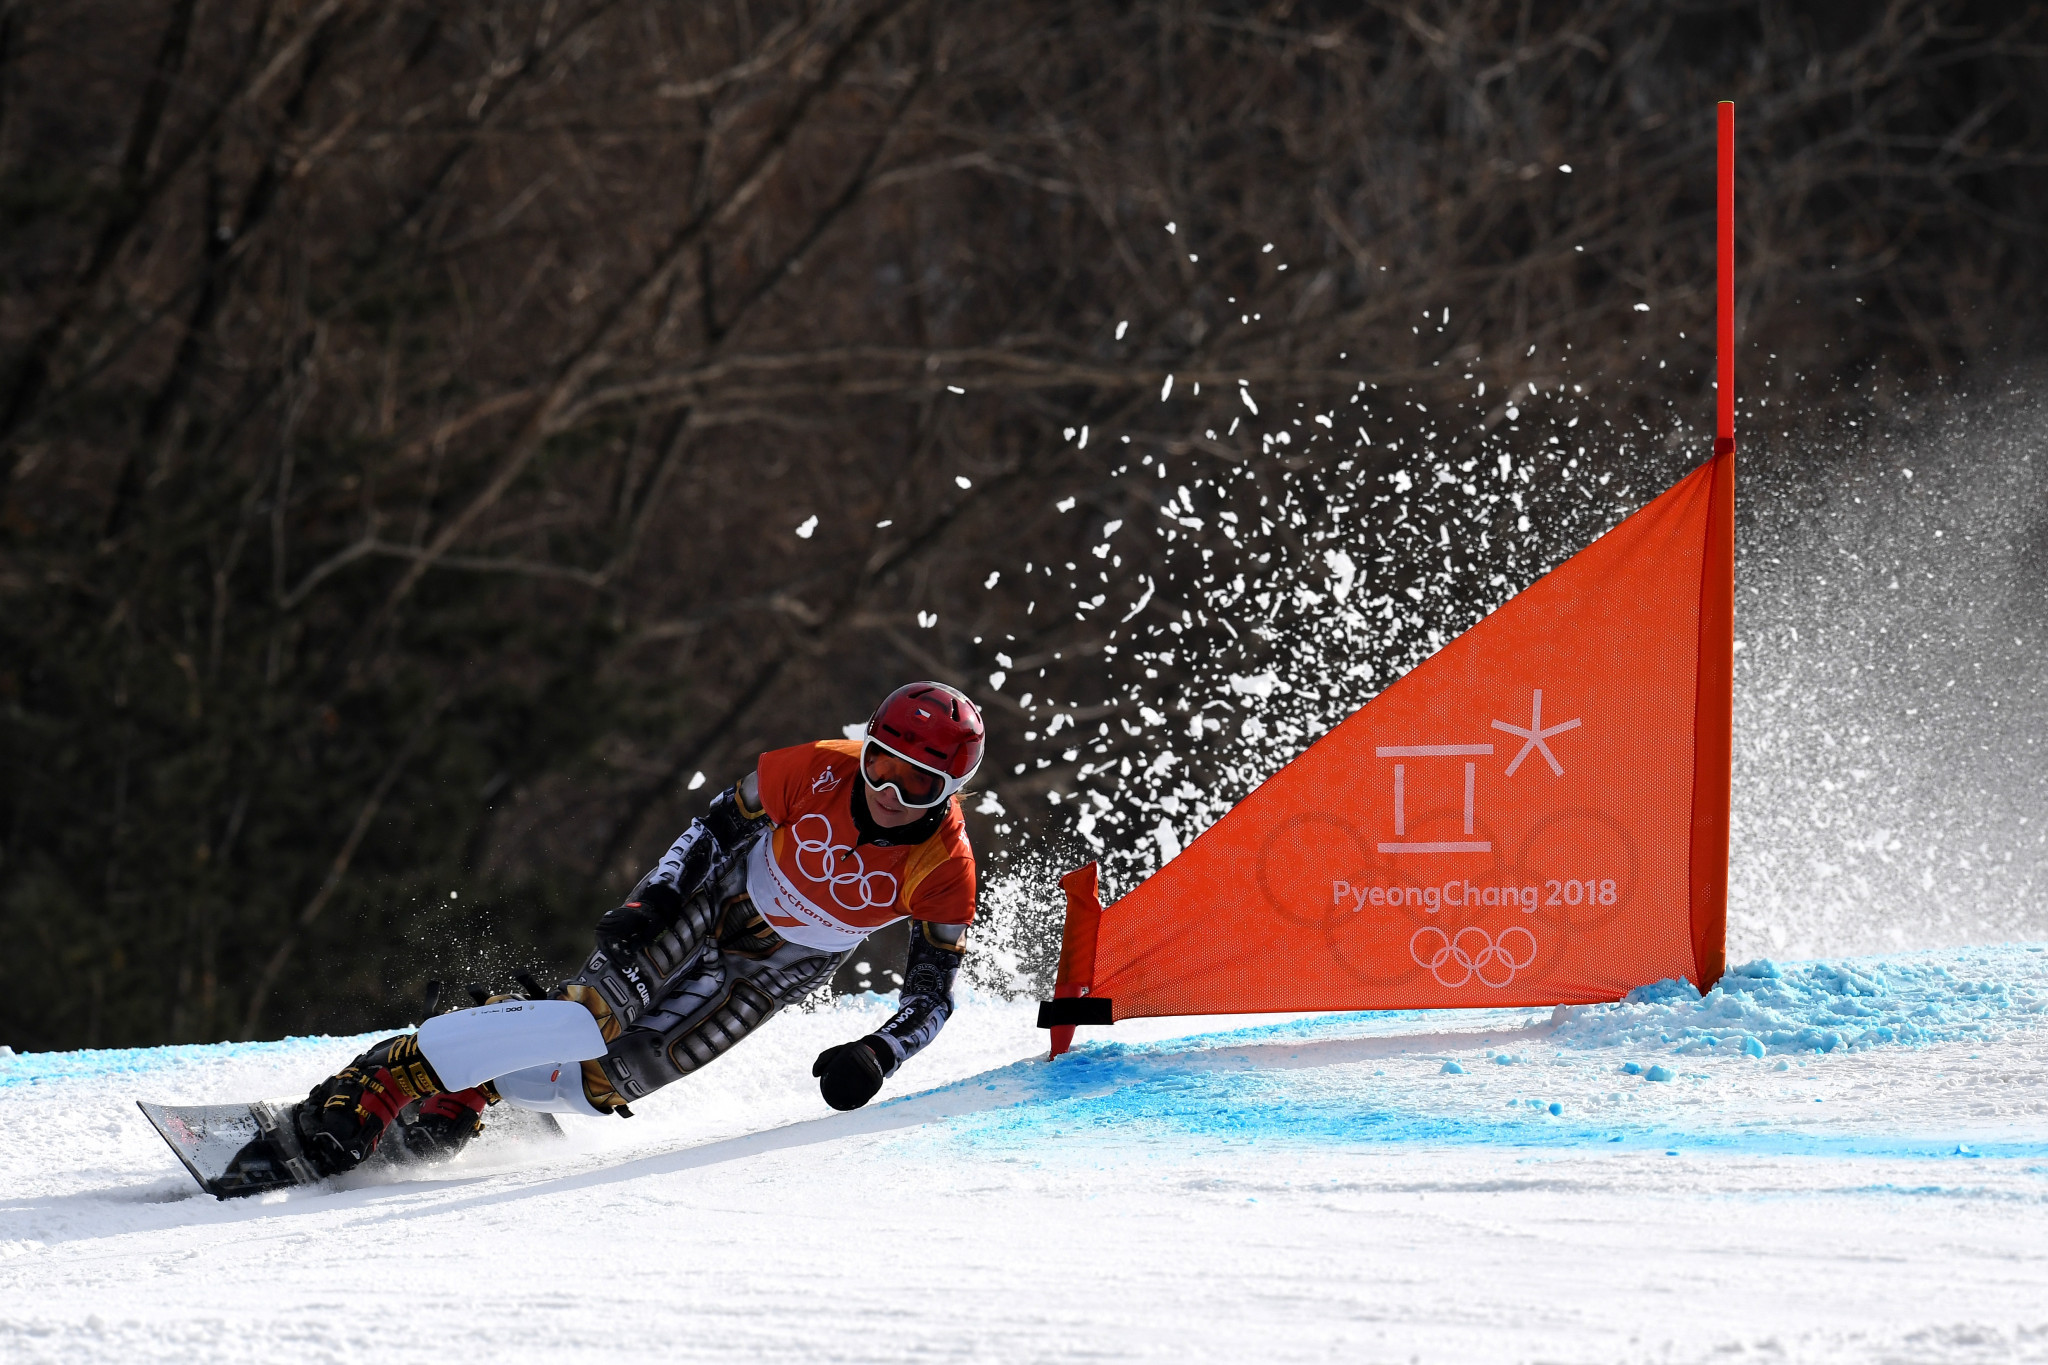 Ledecká completes sensational golden double at Pyeongchang 2018 with parallel giant slalom triumph